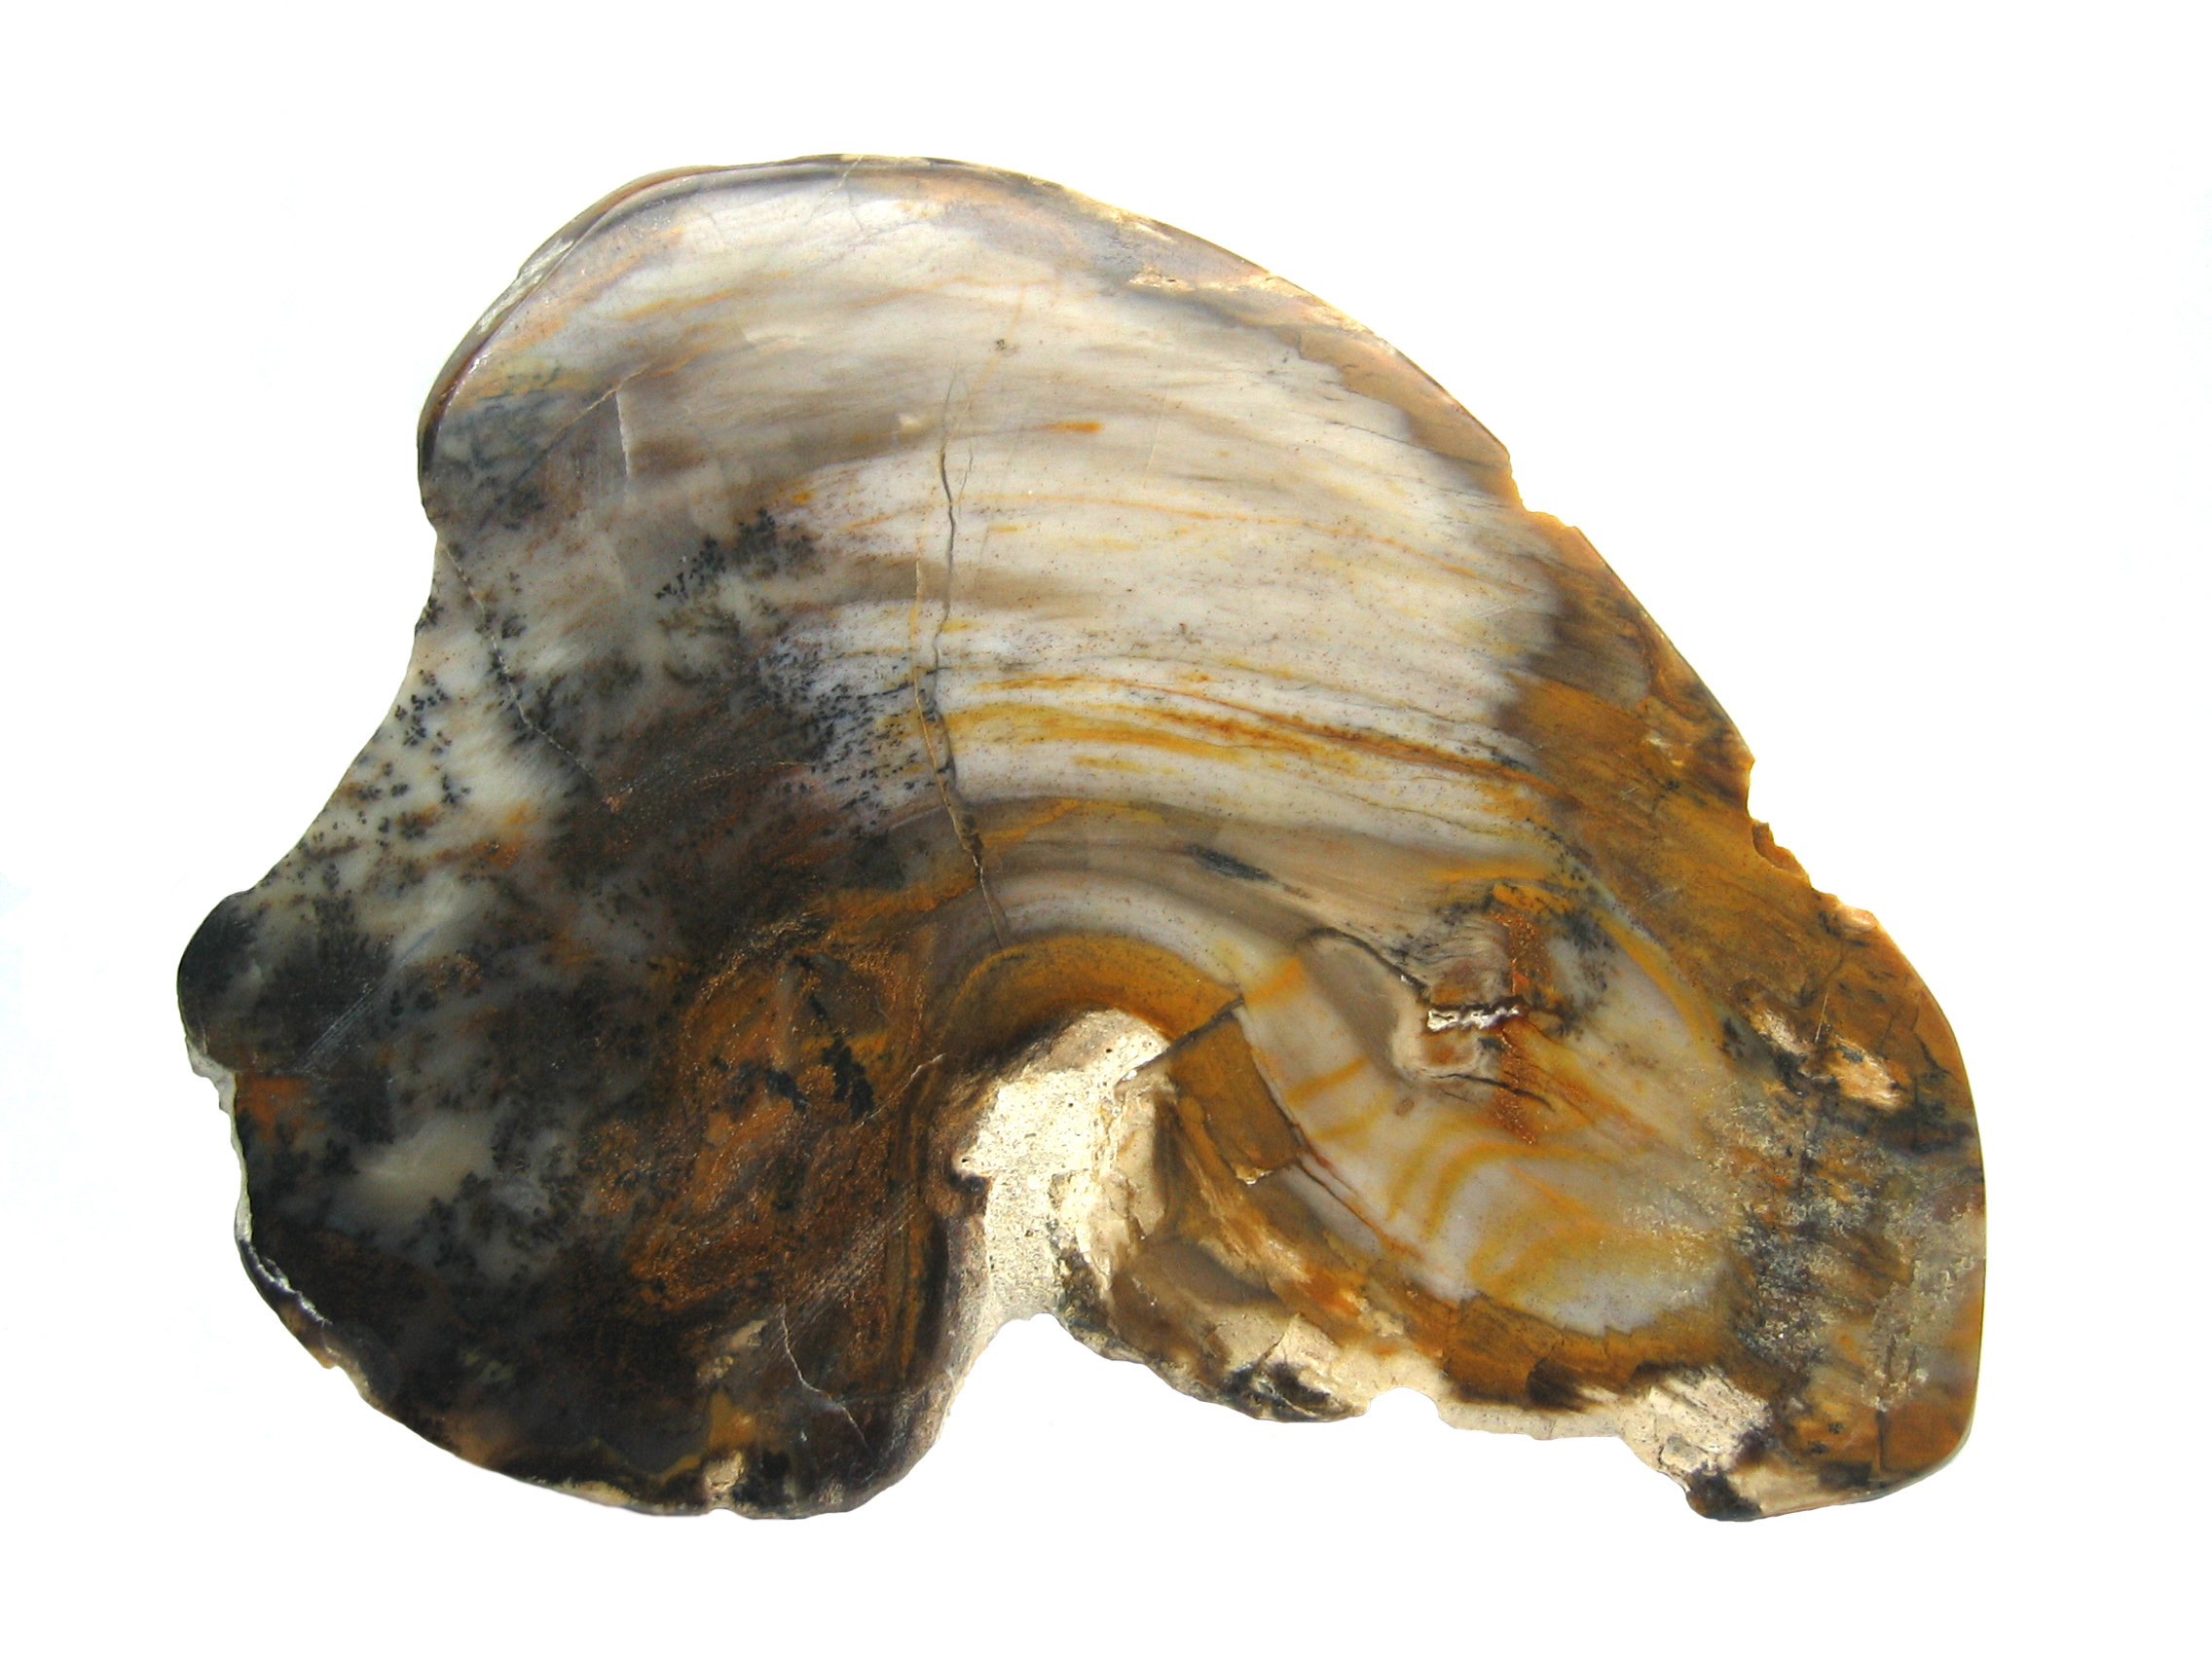 File:Polished Petrified Wood Macro.JPG